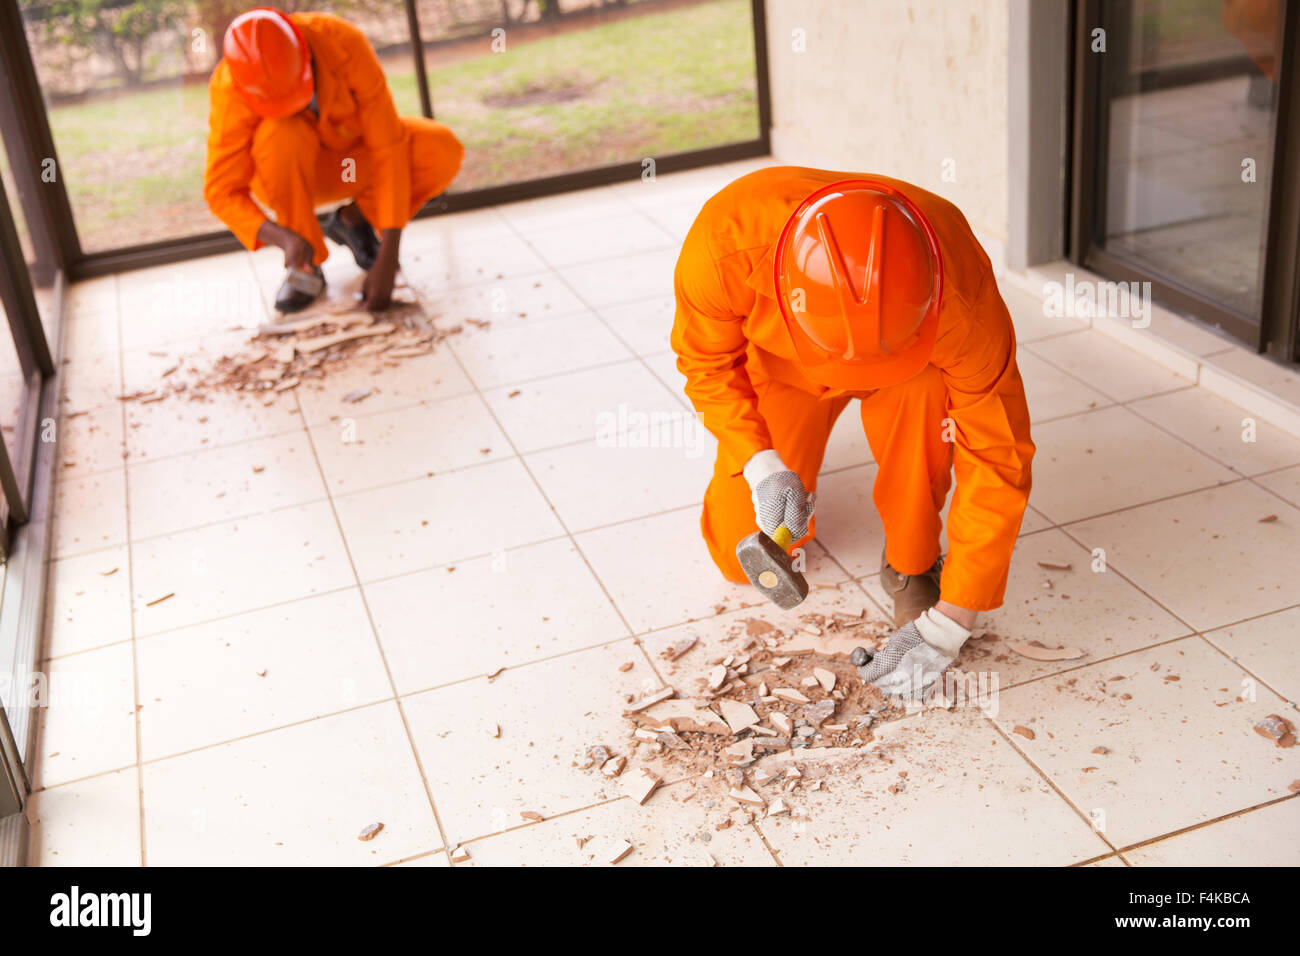 contractors removing old floor tiles using hammer and chisel - Stock Image